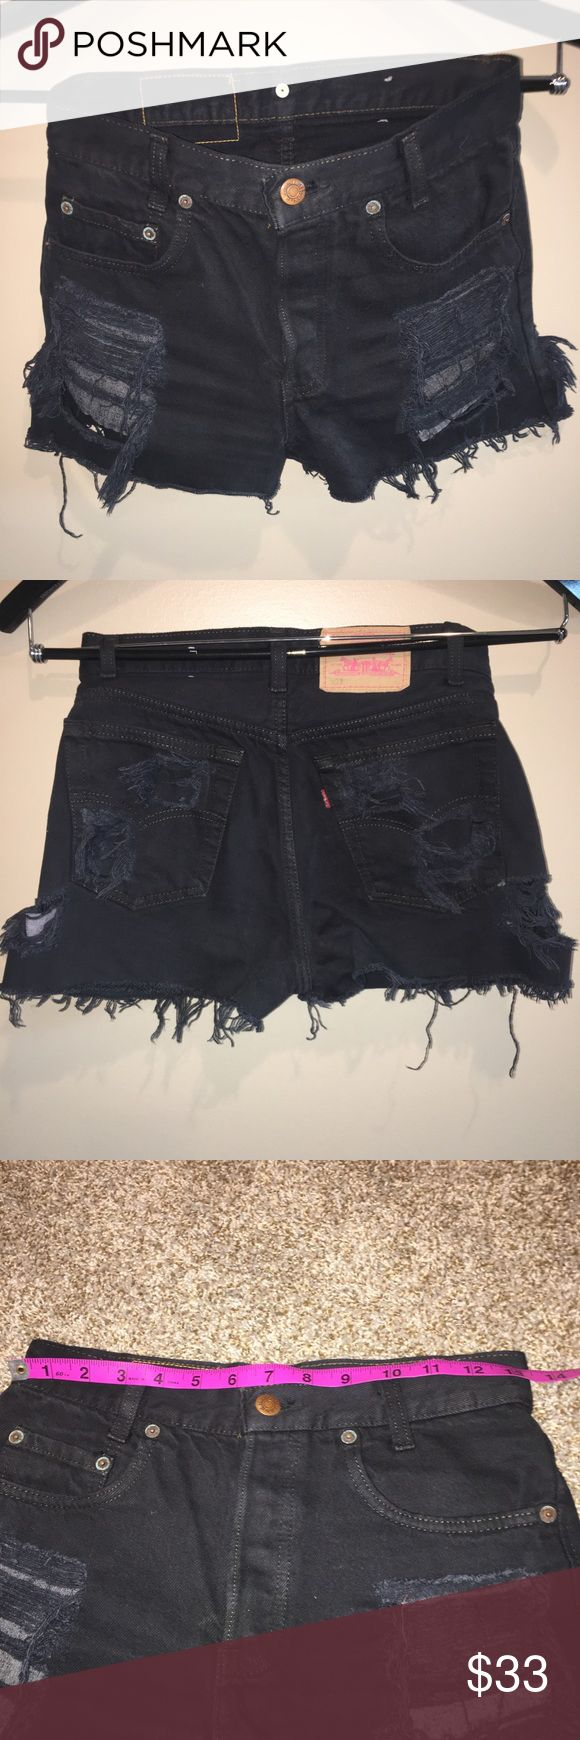 """Levi's destroyed Jean shorts. Levi's 501 black destroyed Jean shorts. No size listed but measure about 13"""" across laid flat. I usually wear size 24/25 and these fit me. 501s are a high rise waist. Levi's Shorts Jean Shorts"""